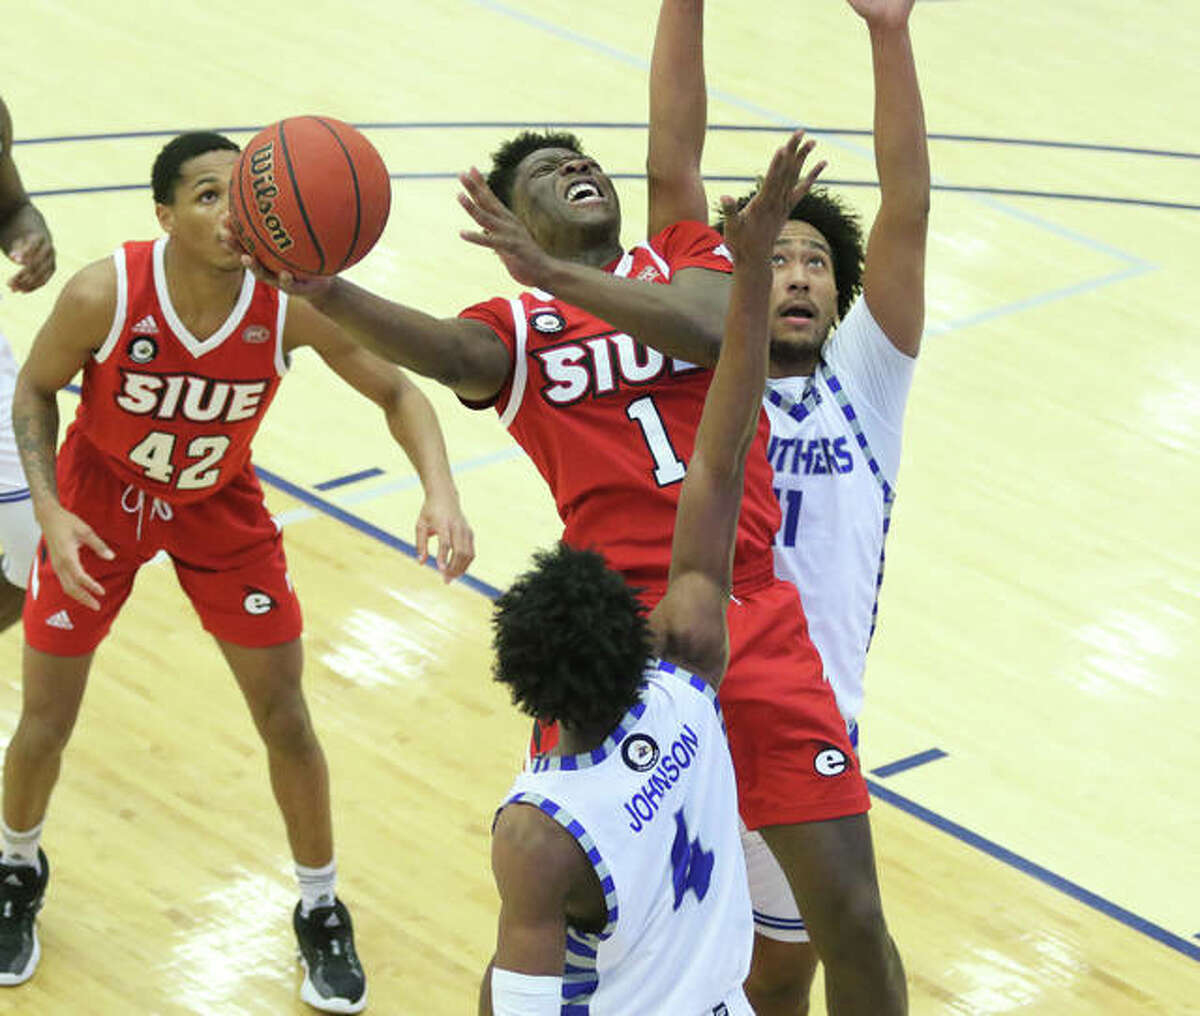 SIUE's Mike Adewunmi (1) scores between Eastern Illinoi's Barlow Alleruzzo IV (right) and Marvin Johnson (4) in an OVC men's basketball game Tuesday night at Lantz Arena in Charleston.